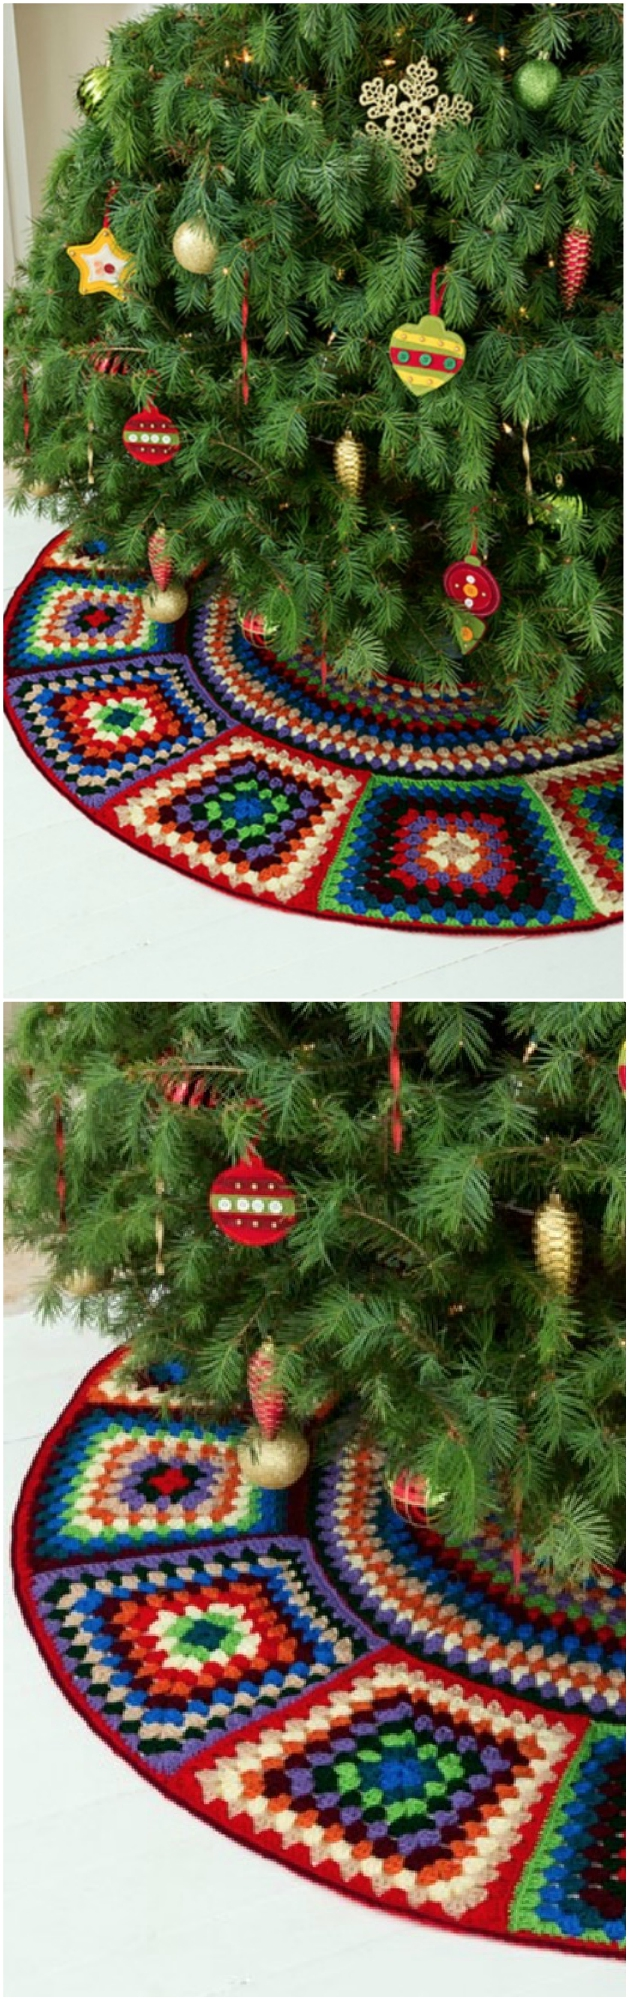 moogly also has this beautiful holiday tree skirt available as a free pattern on their site you can get the details here